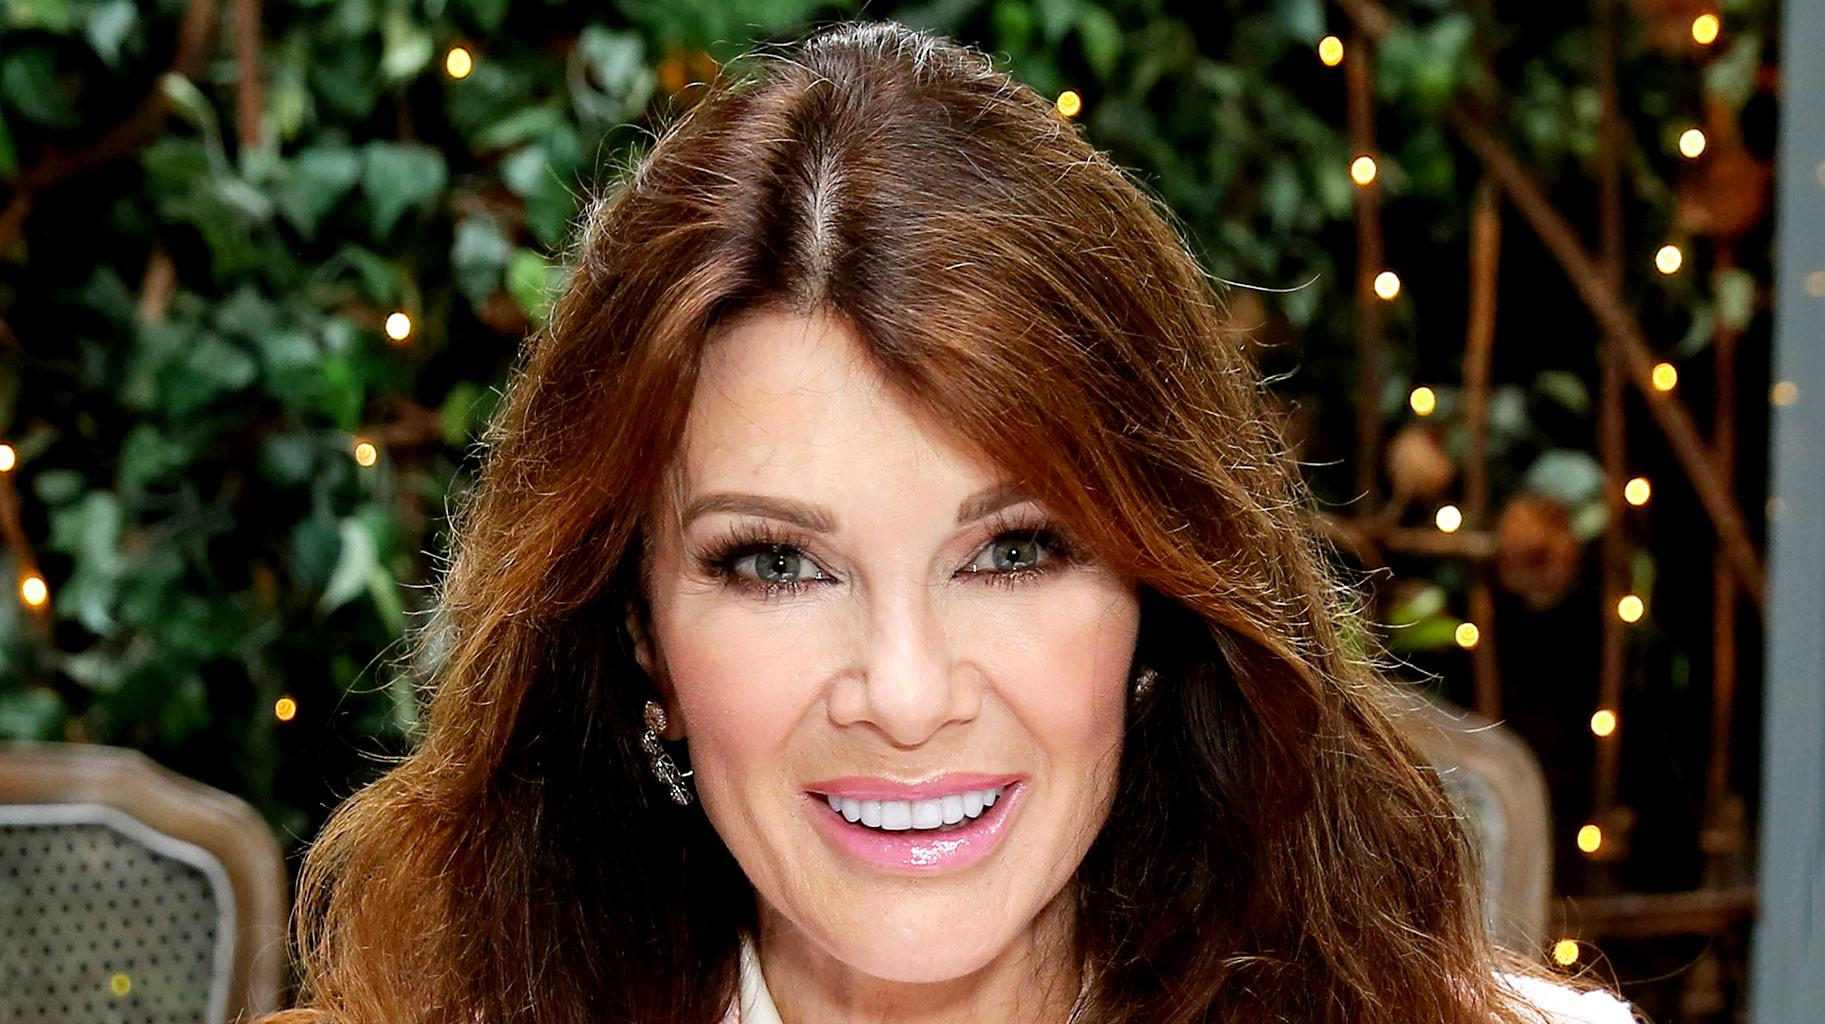 Lisa Vanderpump Might 'Change Her Mind' About Her Permanent Real Housewives Exit - Here's Why!